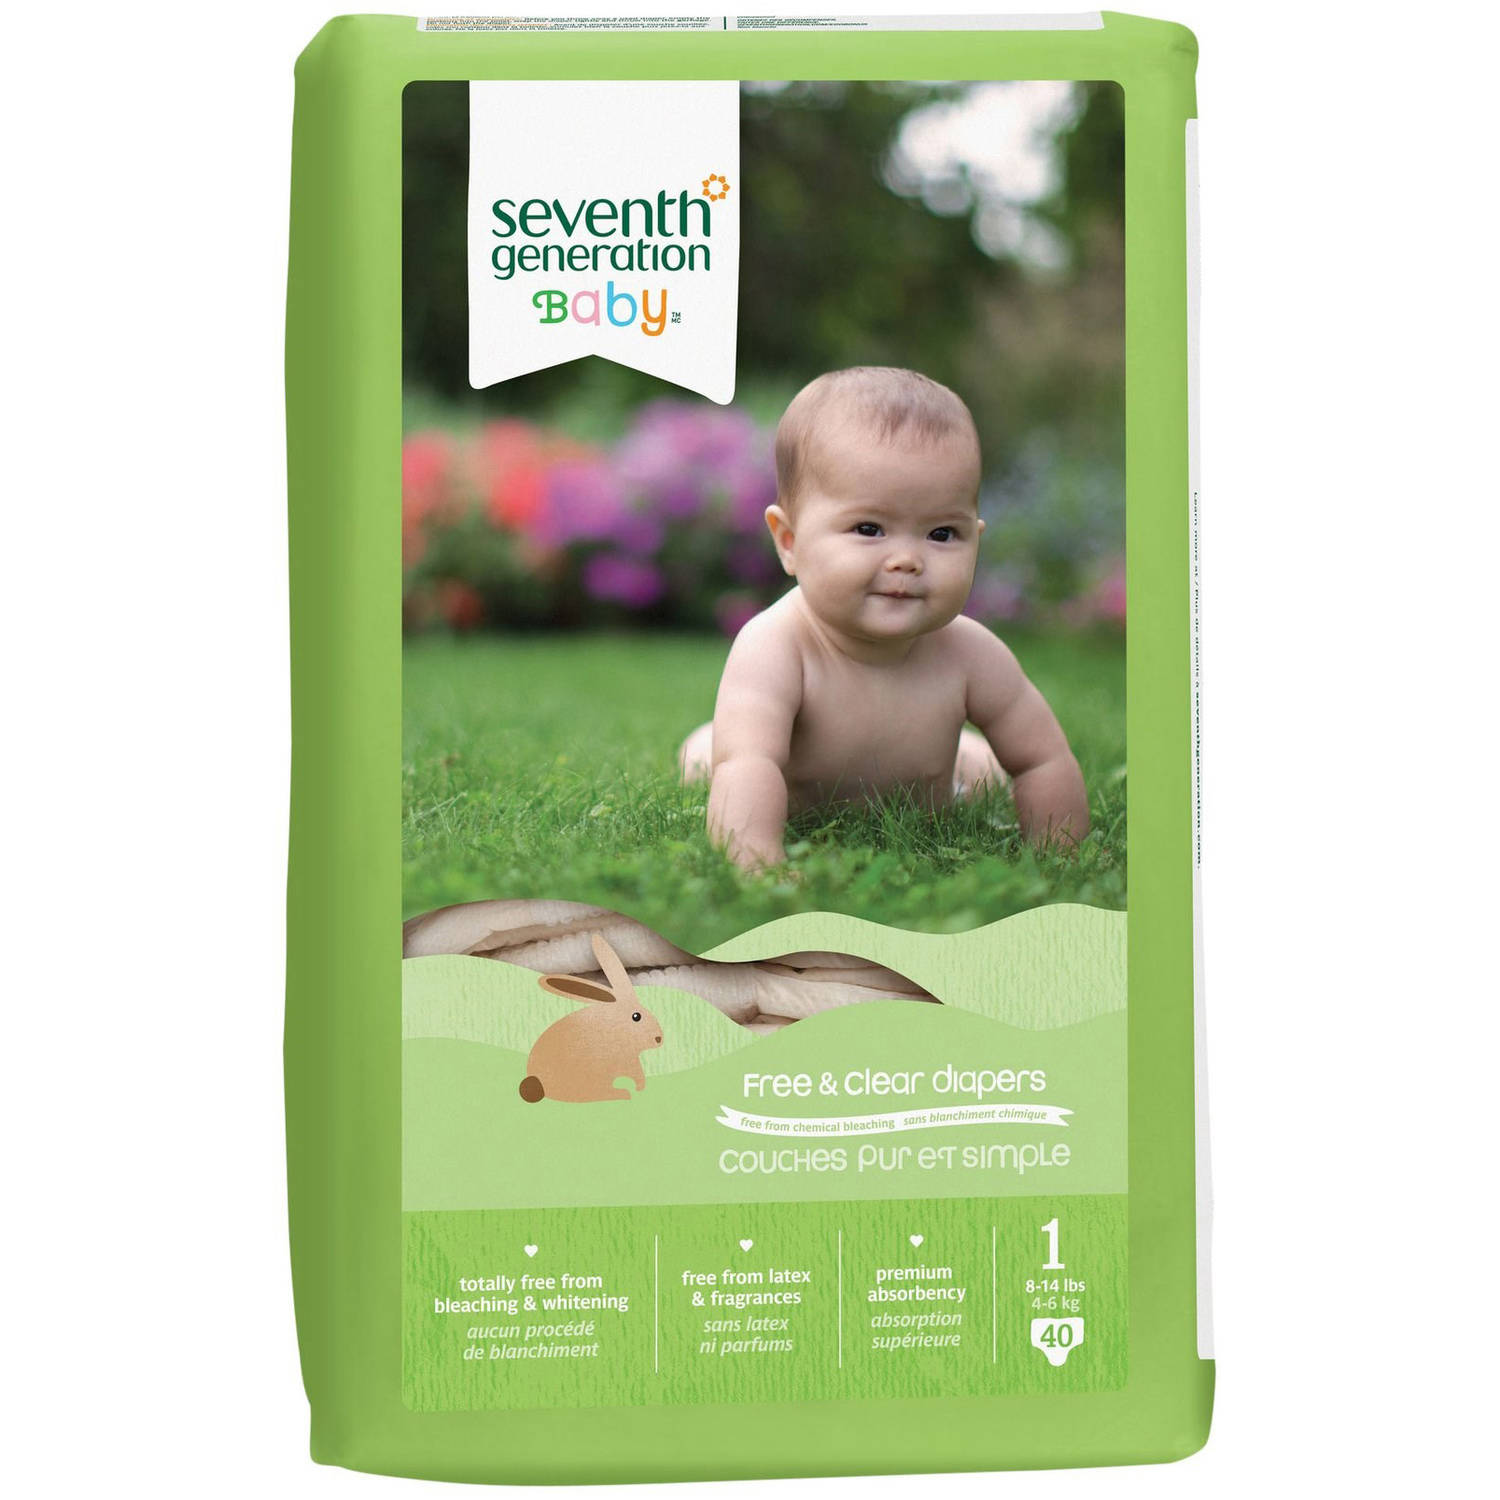 Seventh Generation Free & Clear Diapers, Size 1, 20 Diapers (4 Packs of 40)